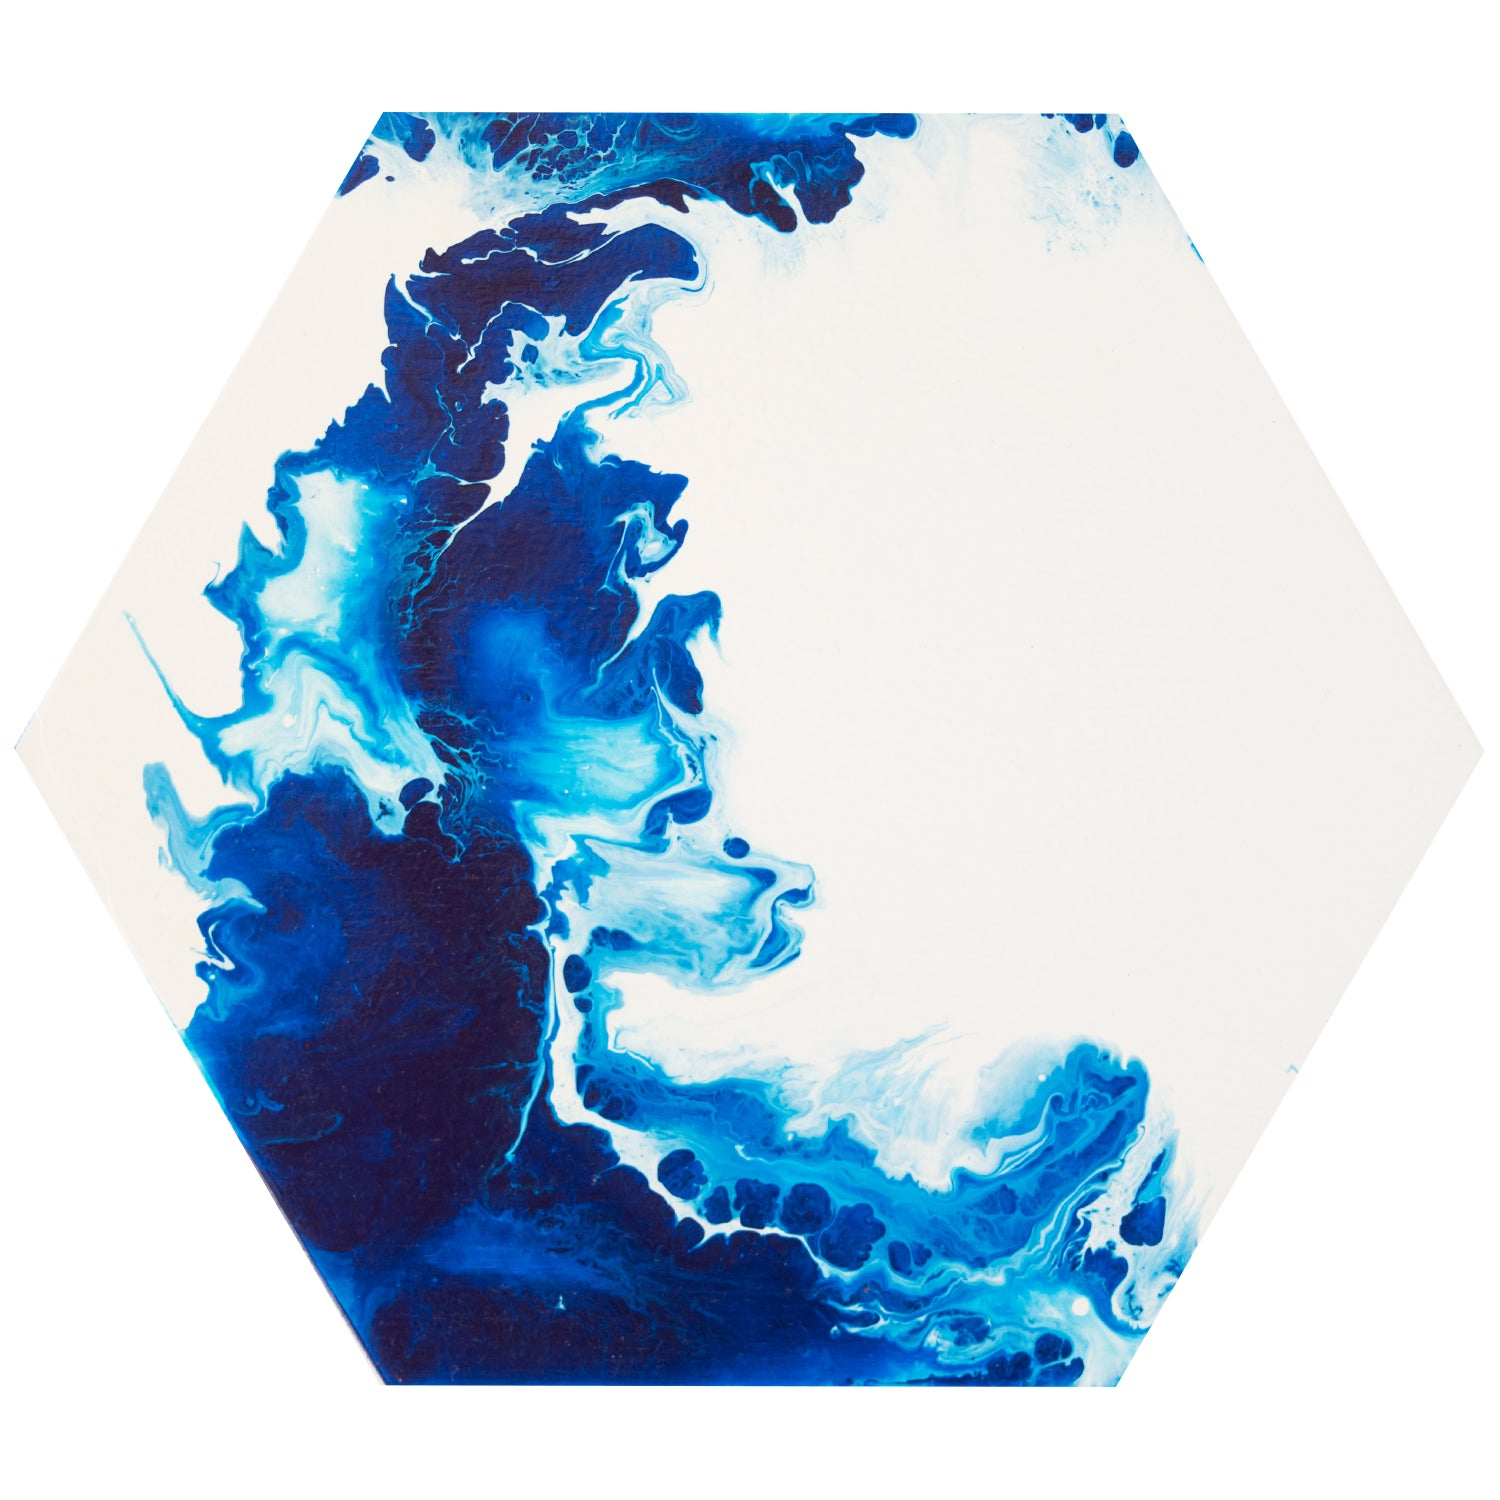 Image of blue abstract hexagon painting